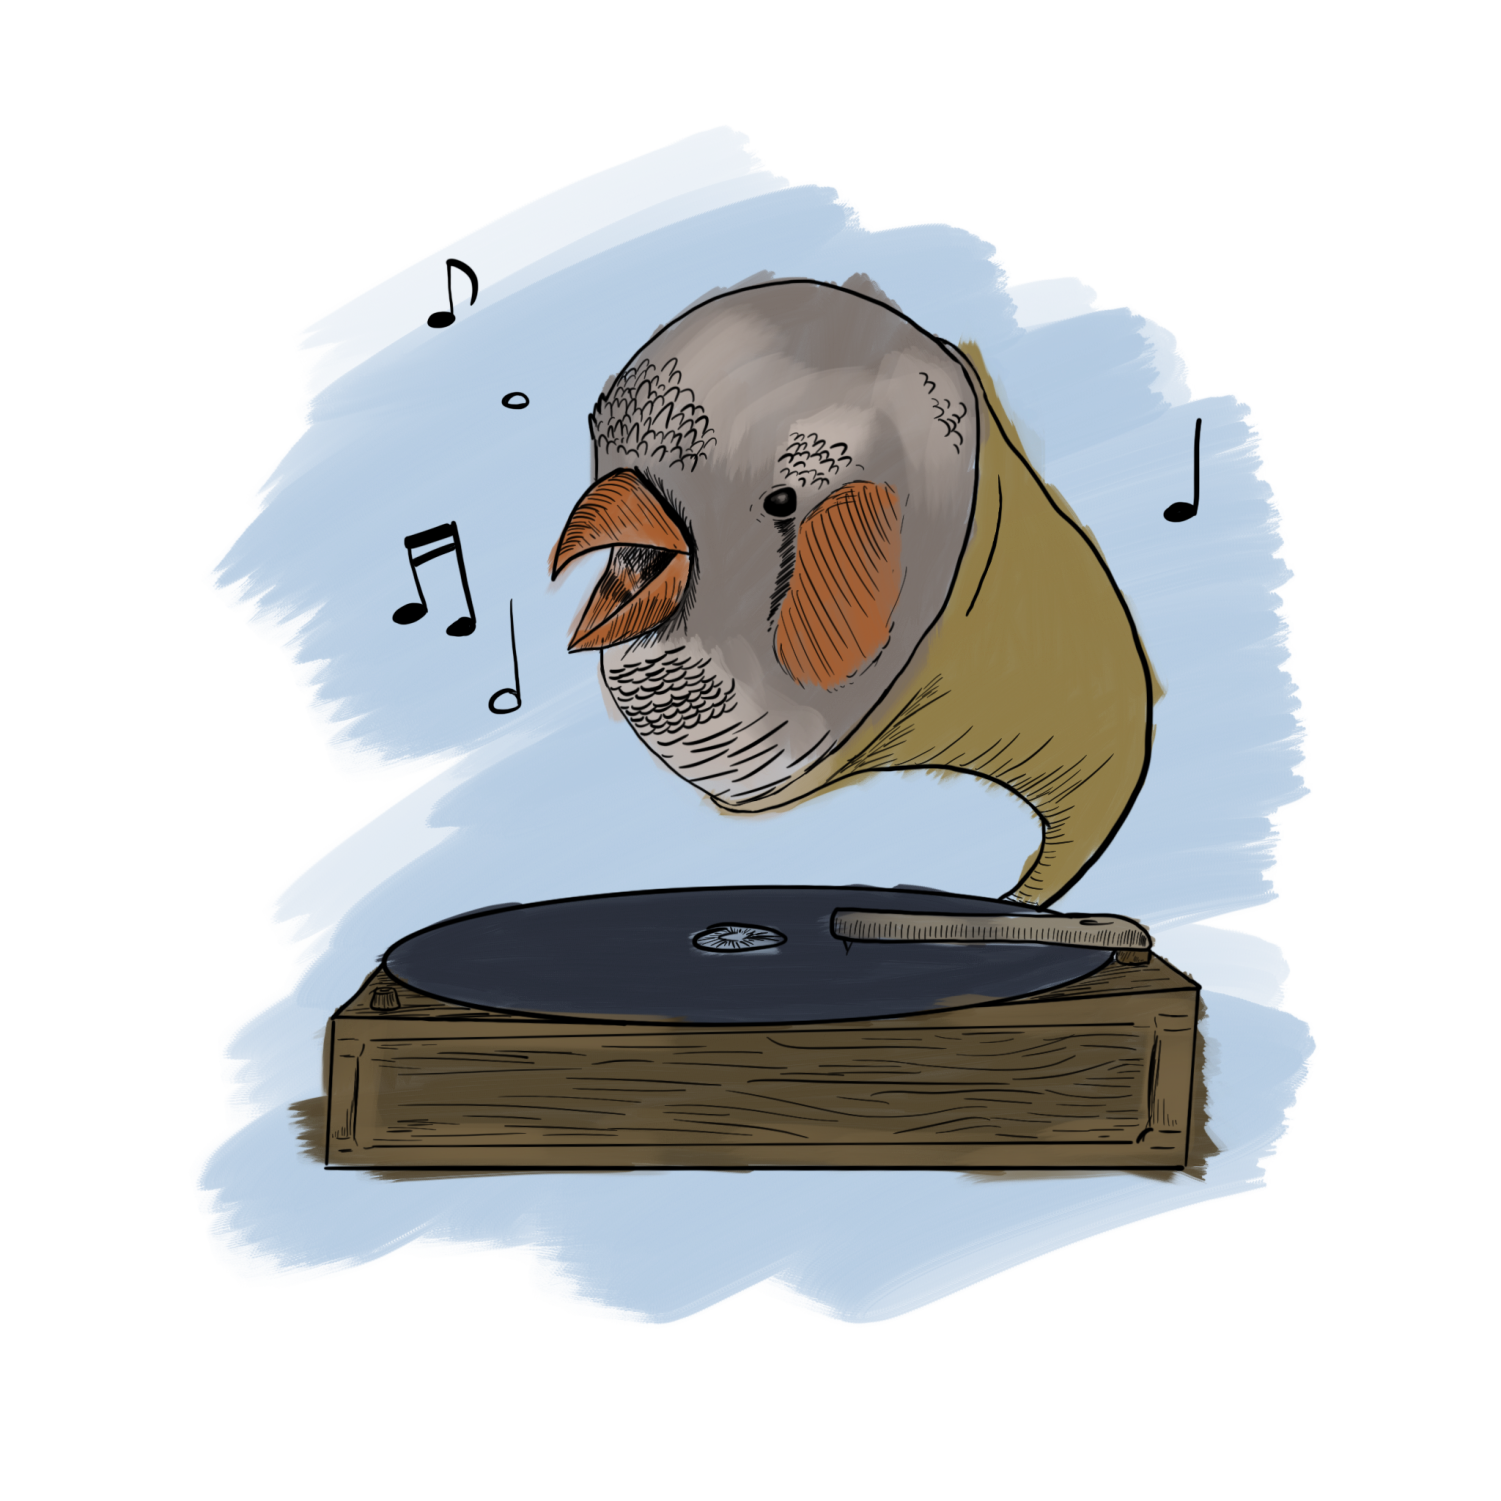 Using optogenics, scientists are able to have birds learn a song they have never learned before